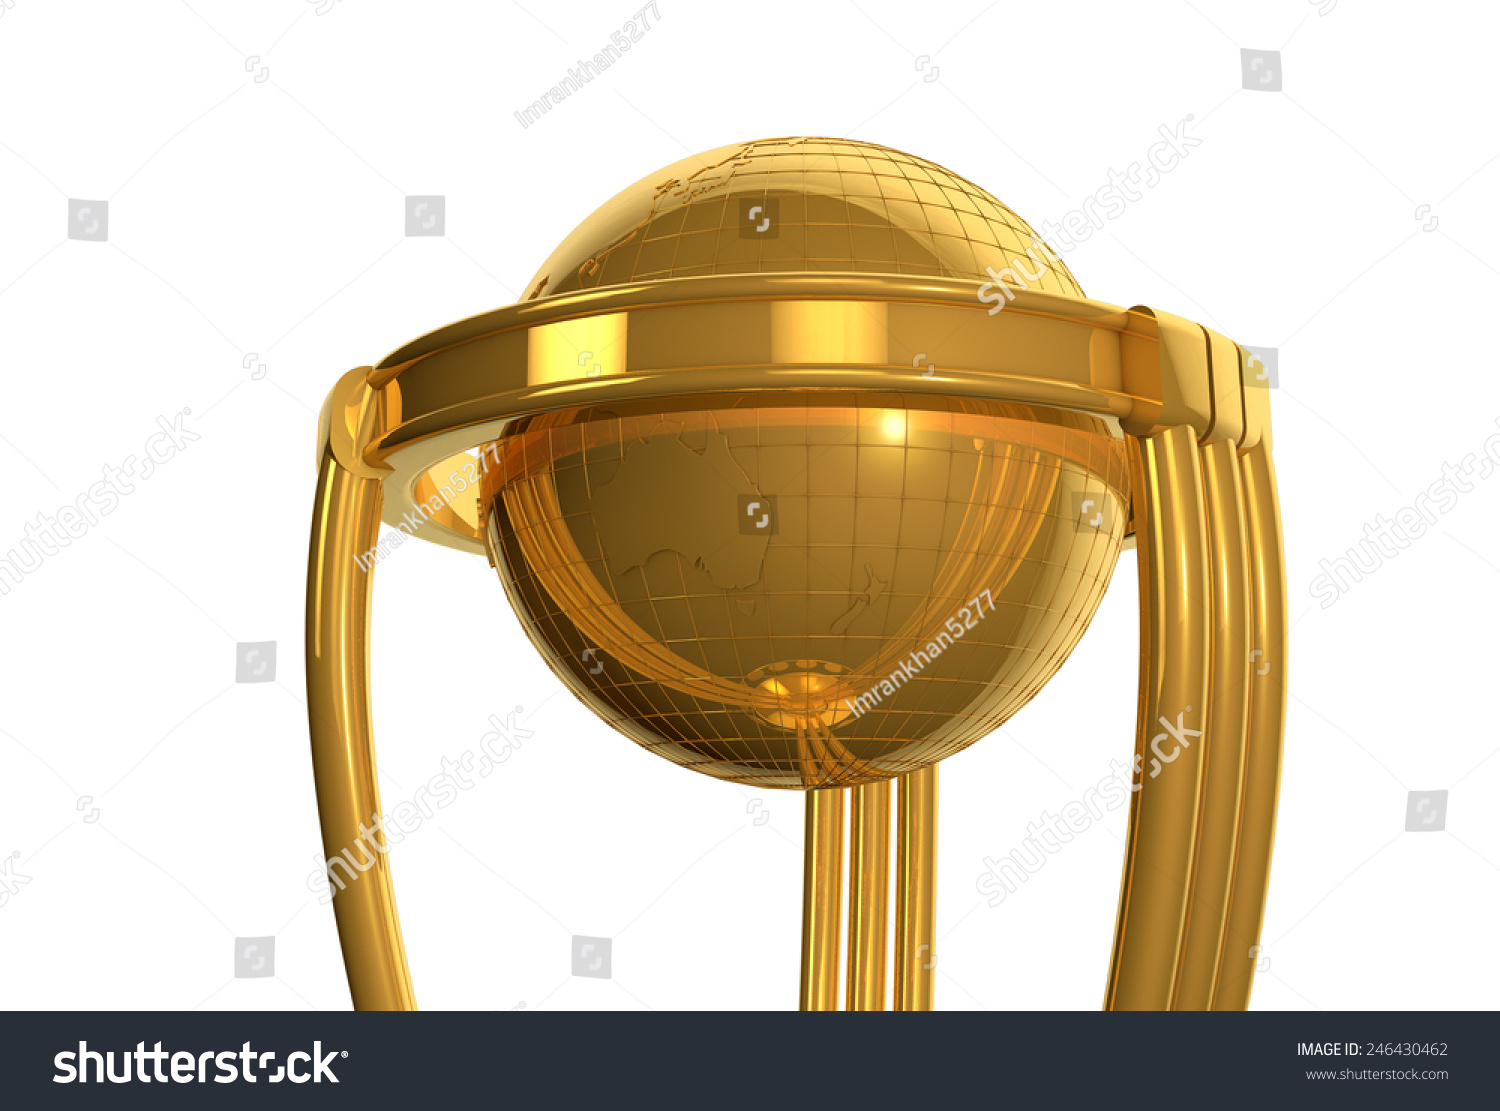 Cricket World Cup Trophy Stock Illustration 246430462